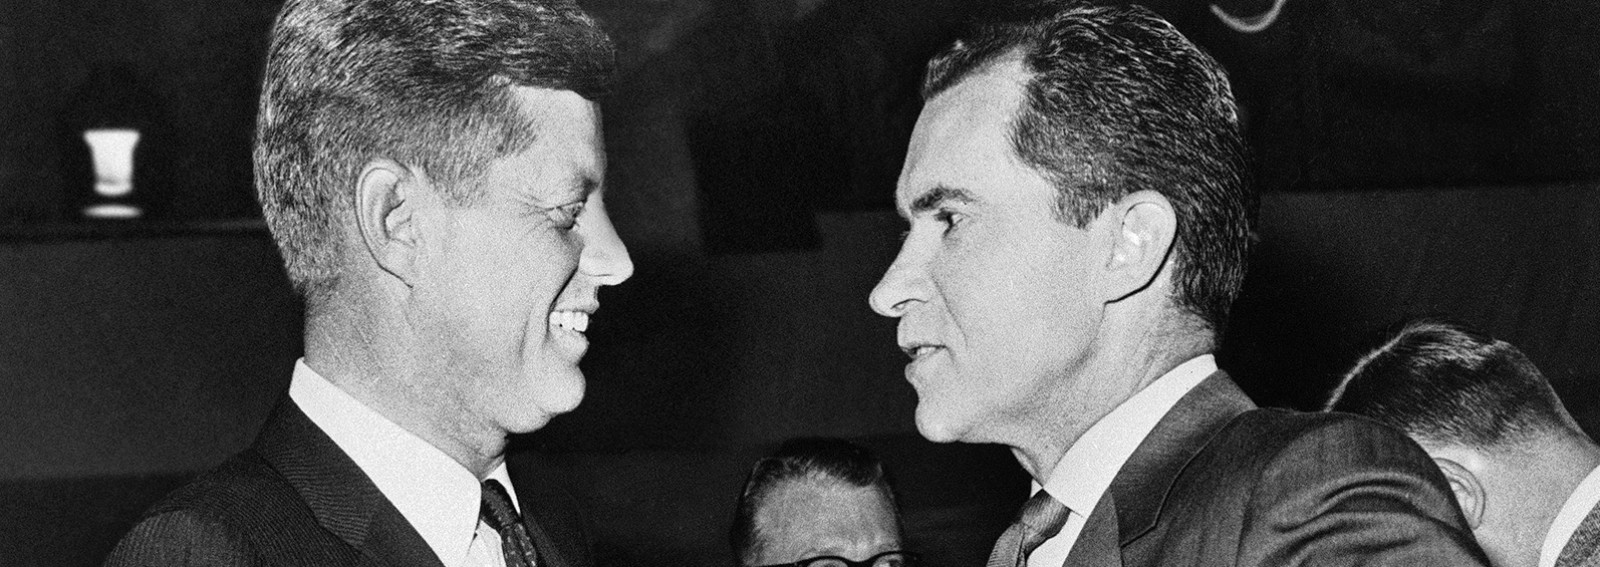 The most iconic moments in presidential debate history ever are ...